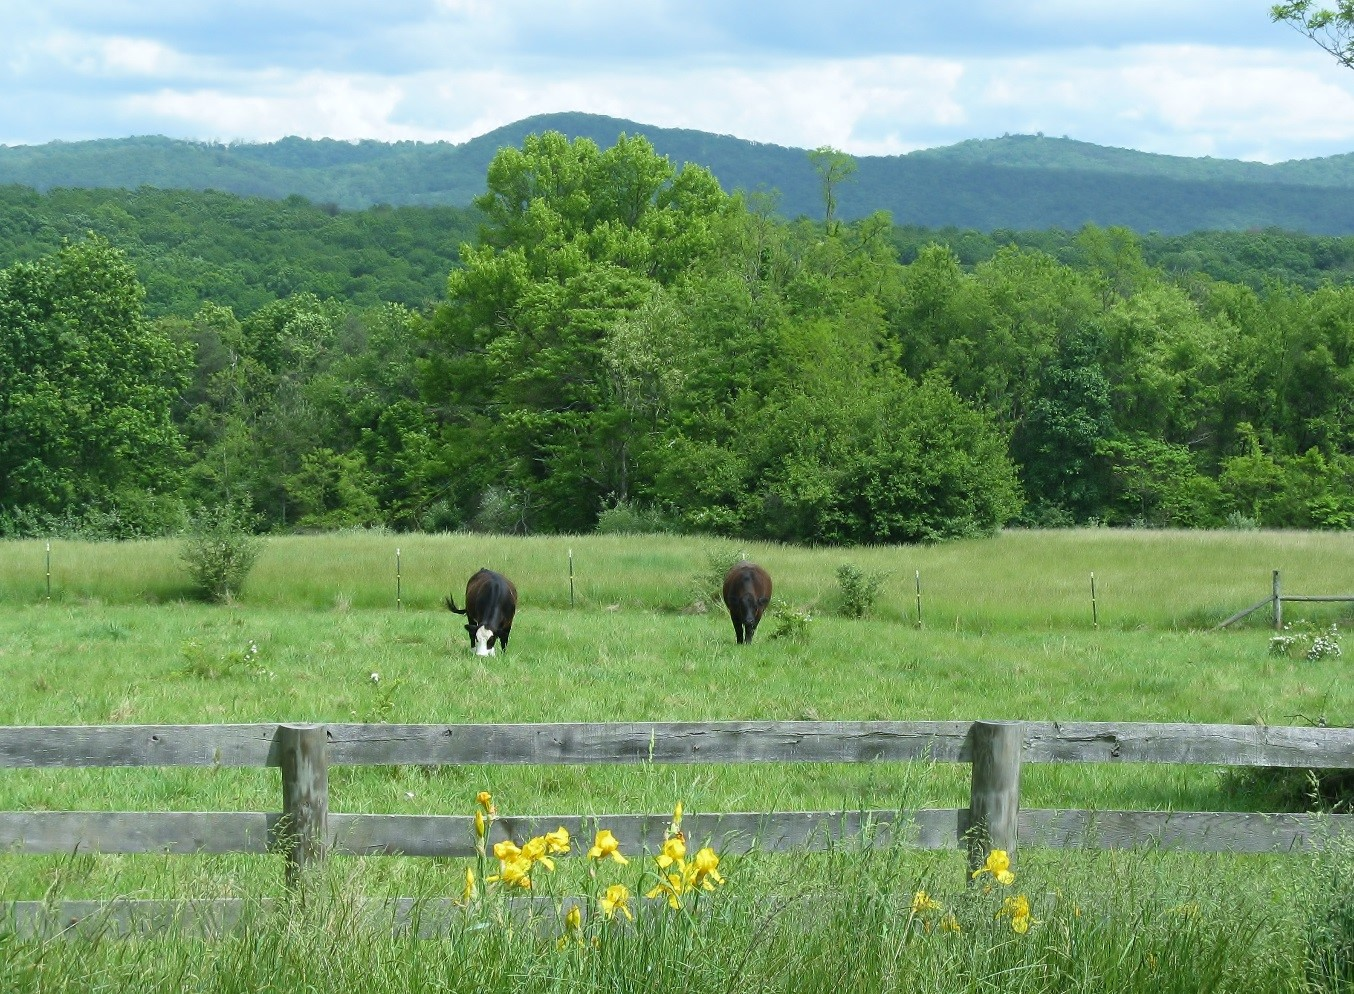 Private conservation easement, Hampshire County, West Virginia. Emily Warner, 2012.